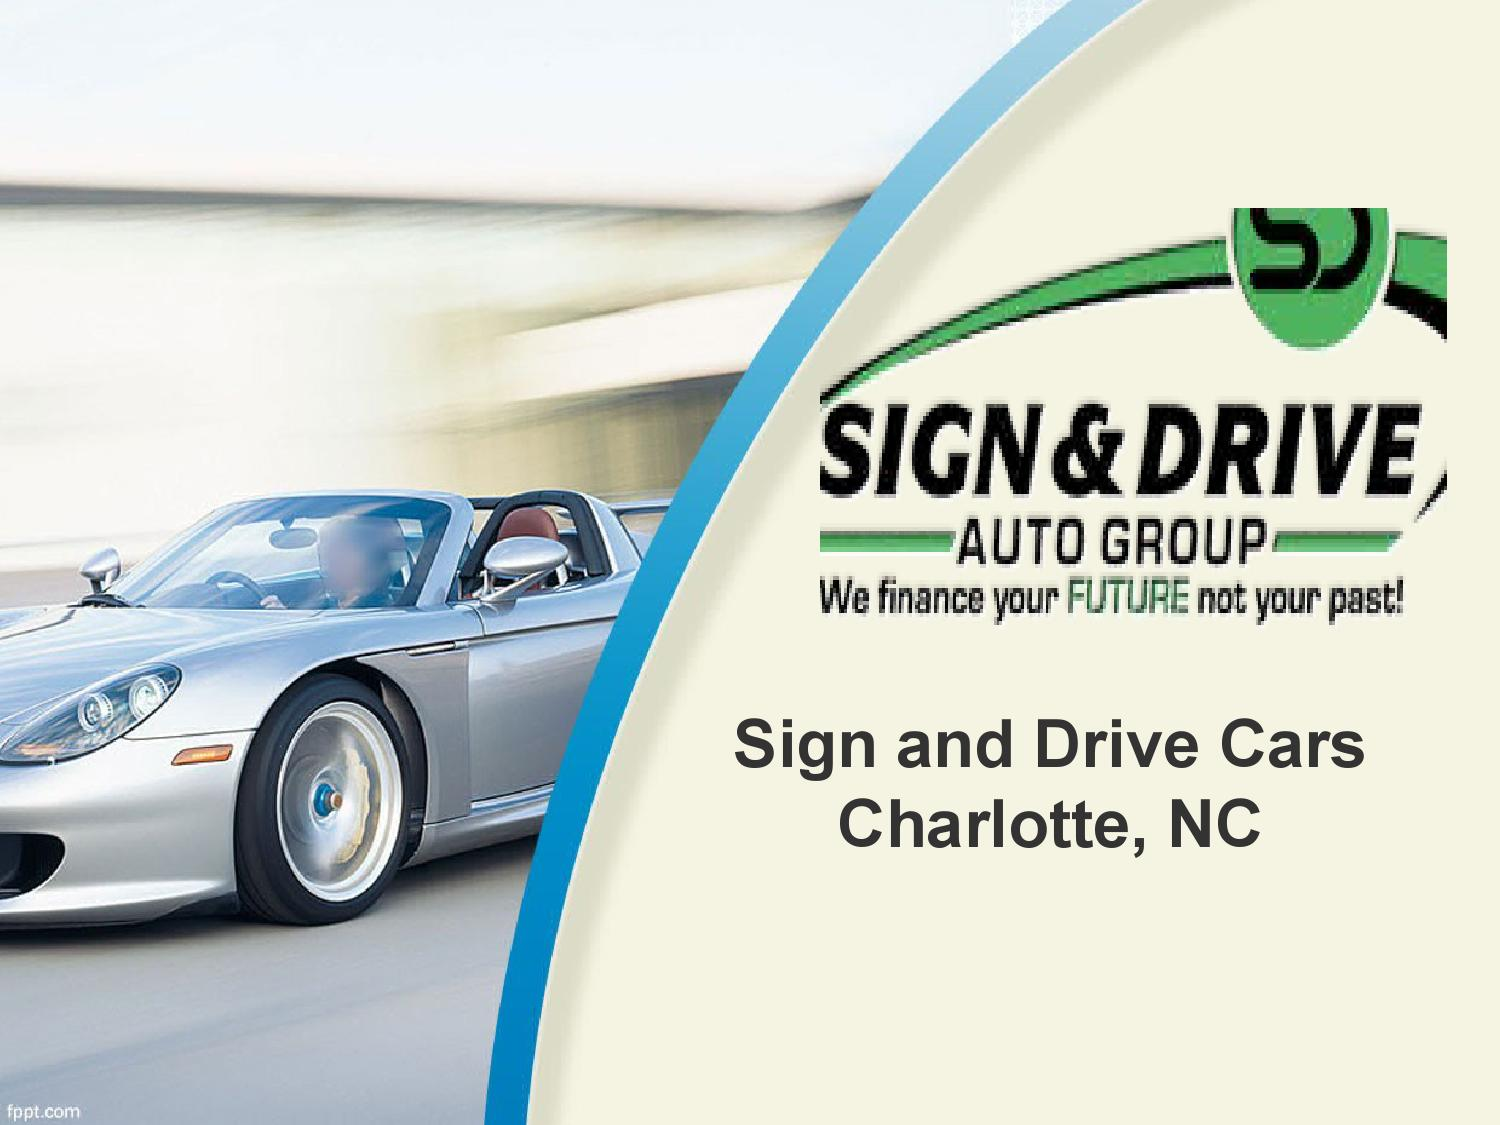 Honda Of Gastonia >> Sign and Drive Cars Charlotte NC by Sign and Drive Auto Group - Issuu